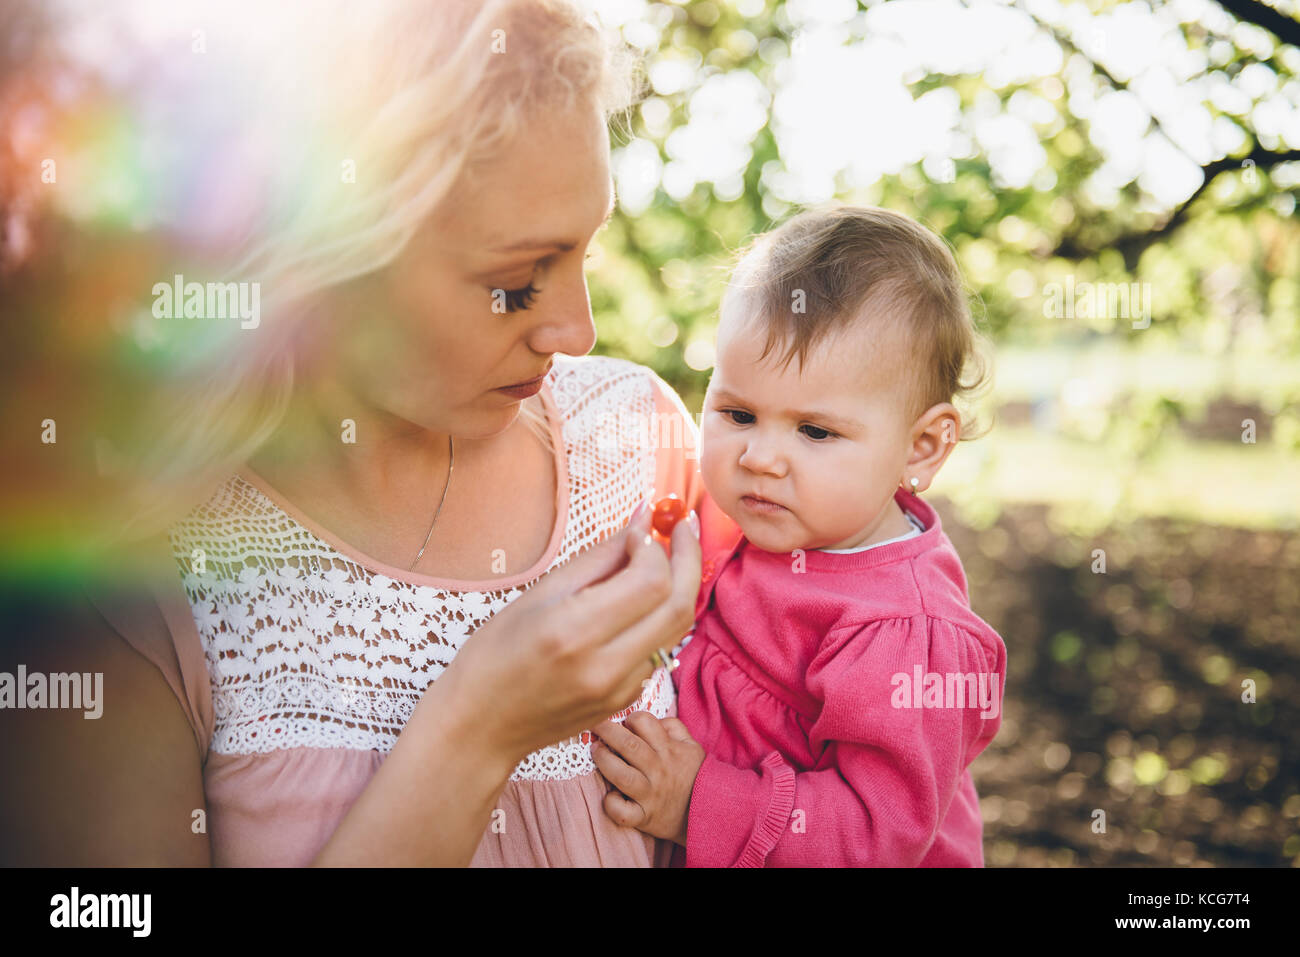 Mother with baby Picking and eating Cherry In Garden - Stock Image